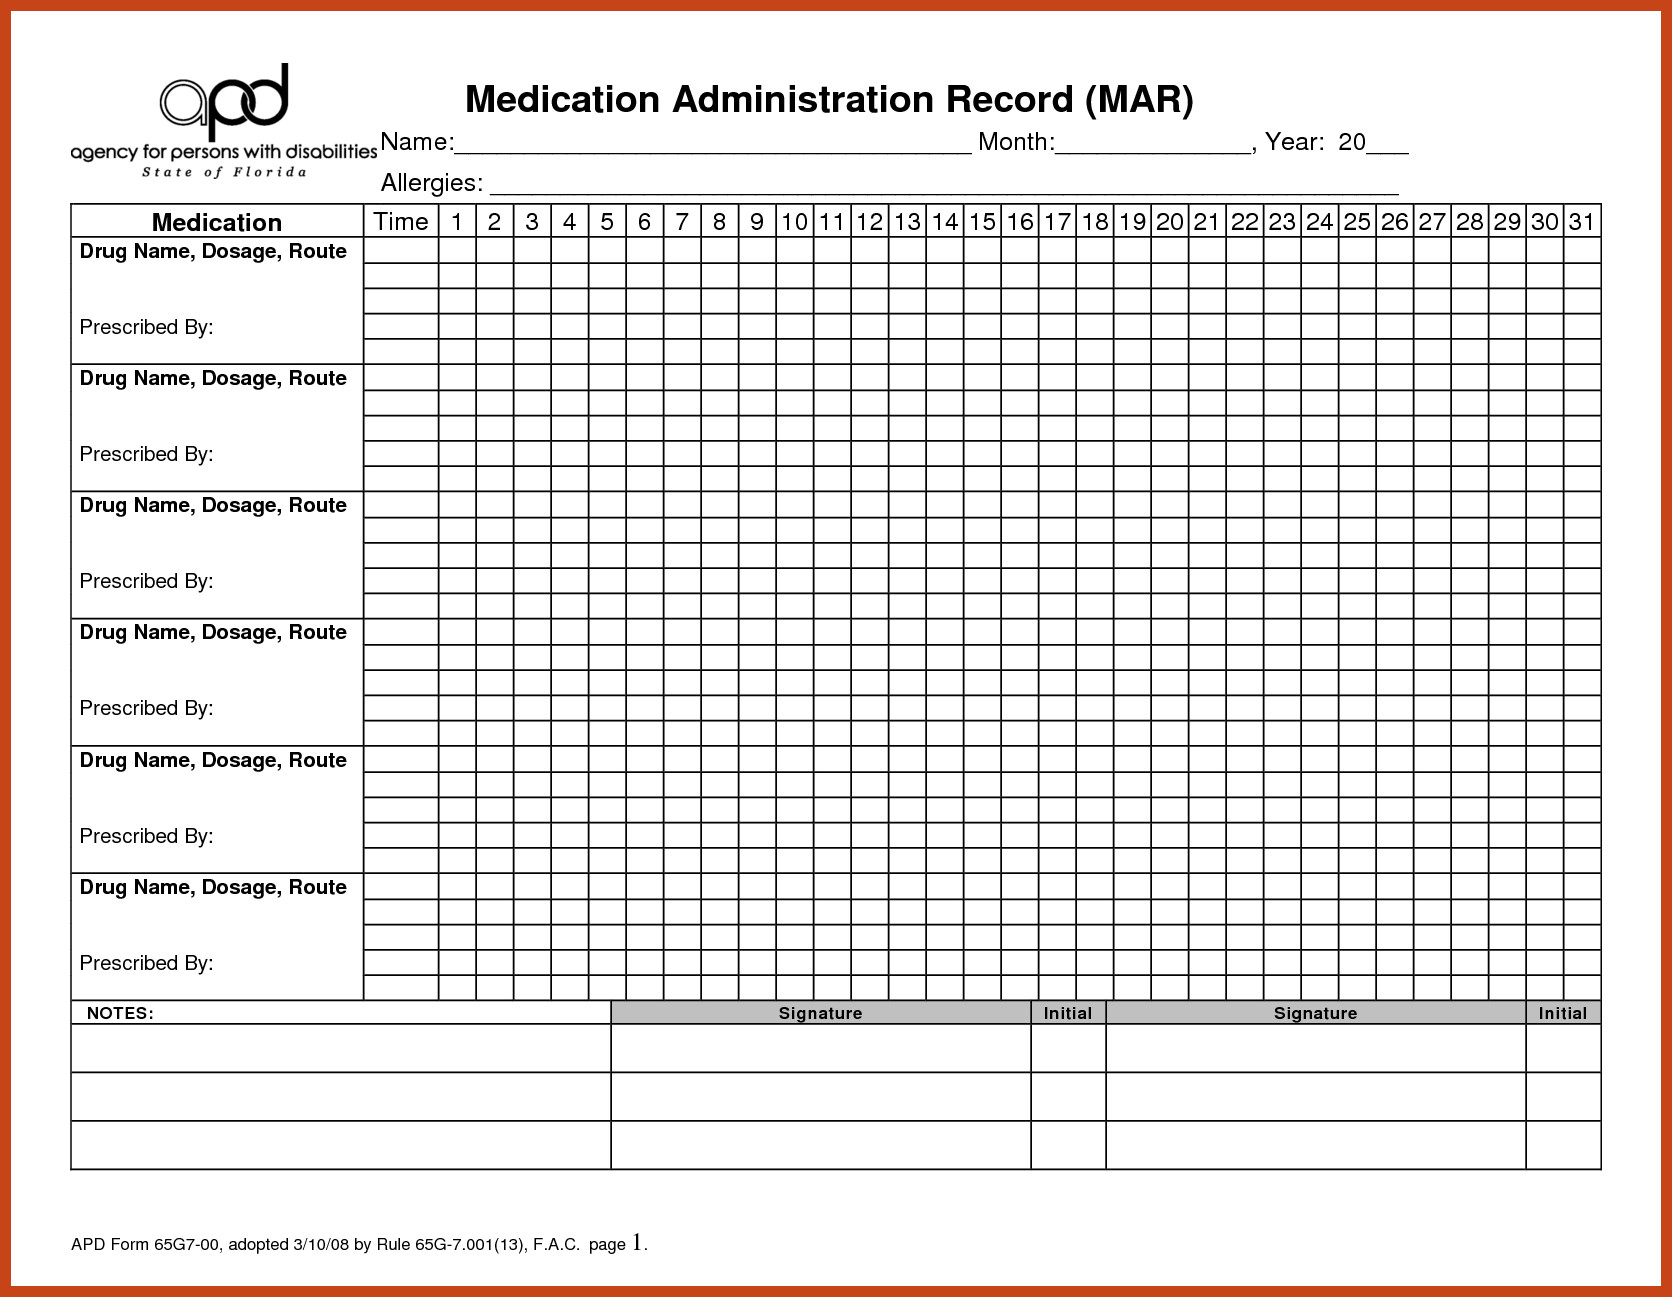 Medication Administration Record Template Pdf Medication Administration Record Template Pdf Hospi